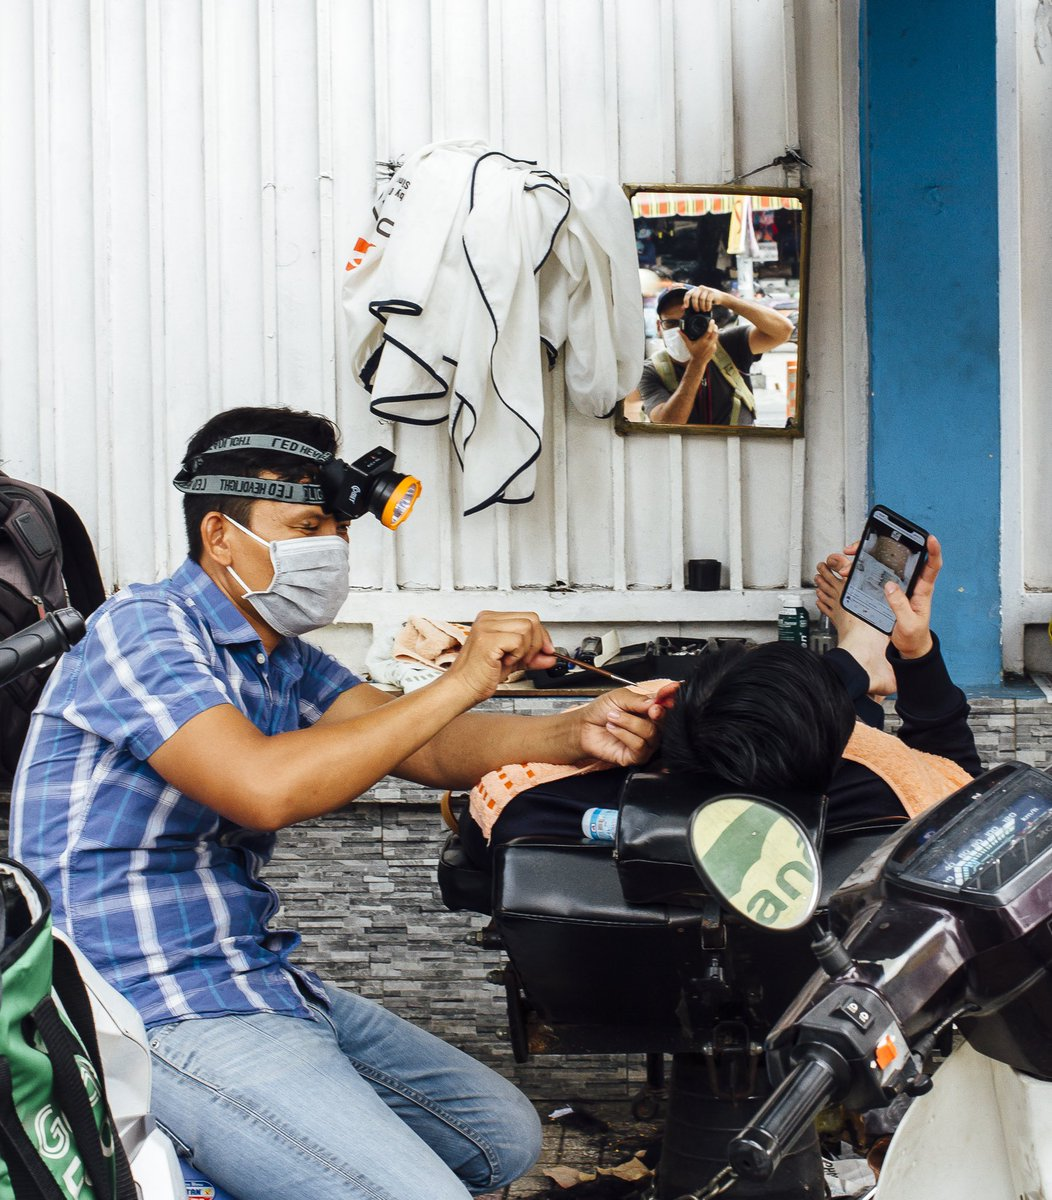 A customer looks at his phone as a street barber cleans his ear. Can you spot me in the mirror?  #photographer #Vietnam #selfie #Travel #Vietnam #Saigon #Saigoneer #photojournalism